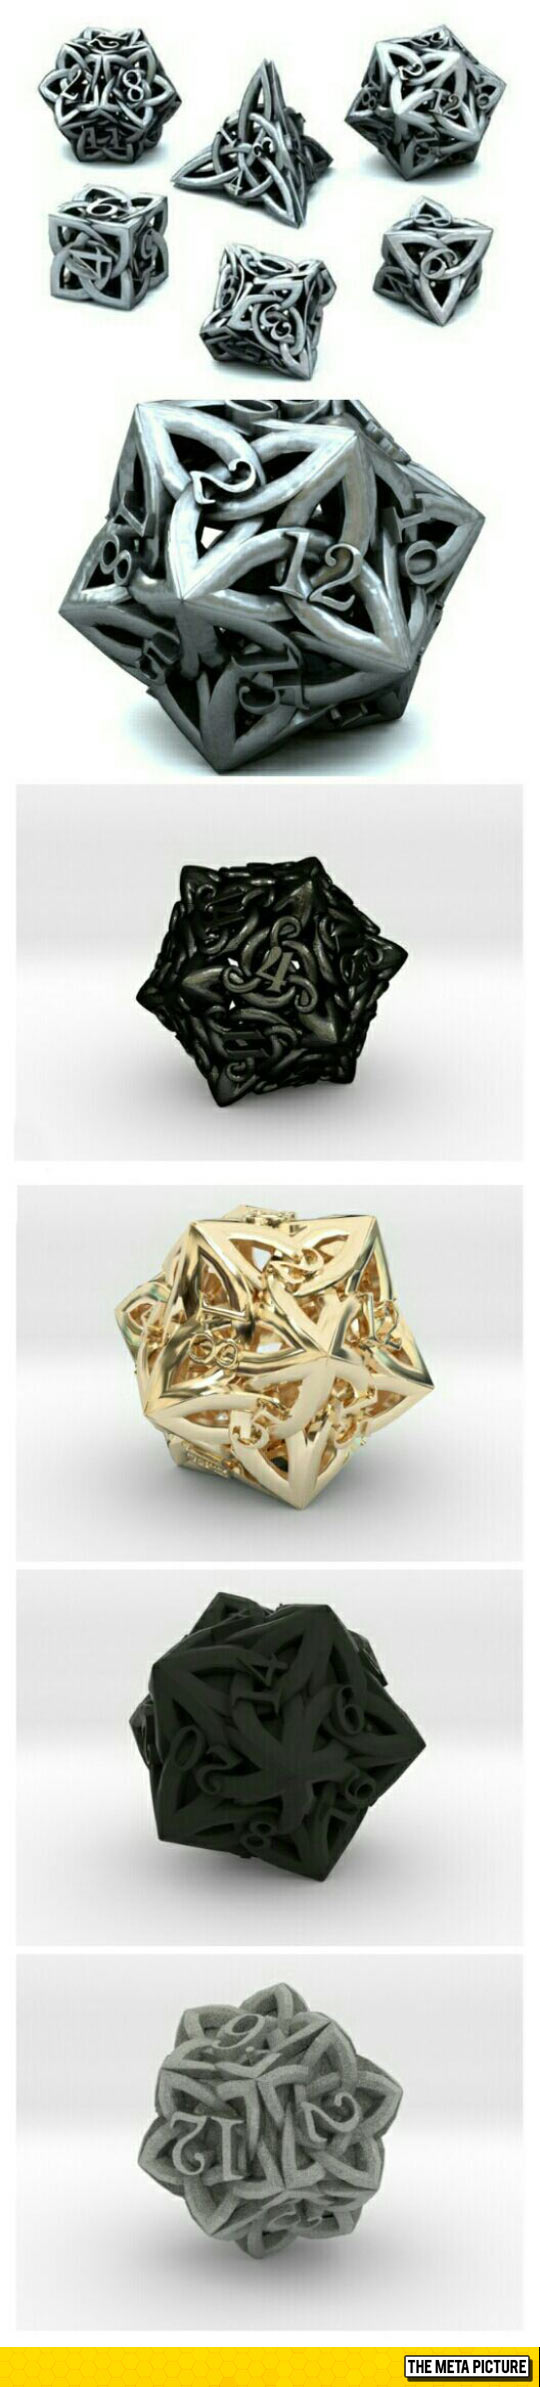 I Want These Dice